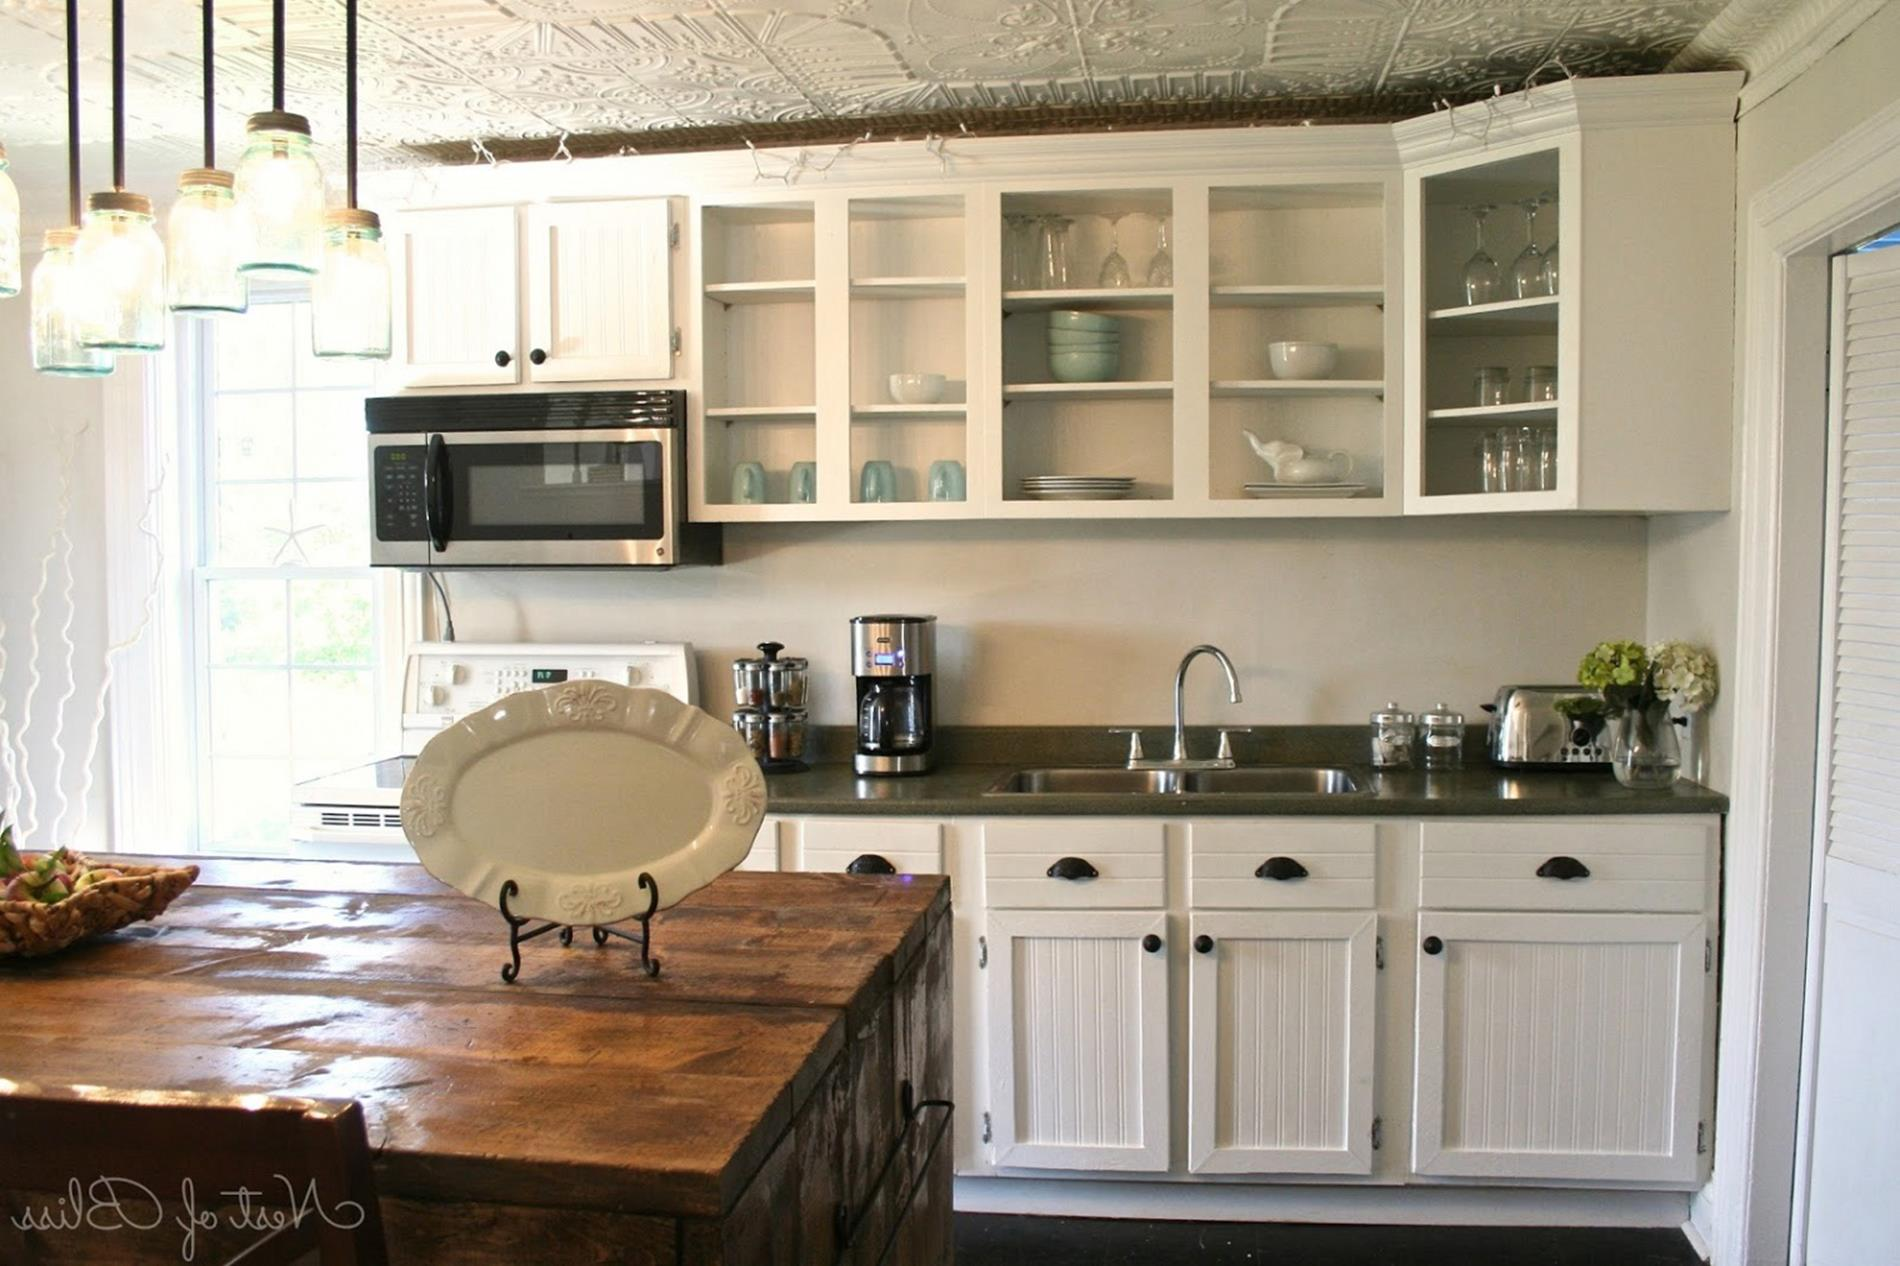 Kitchen Makeover Ideas On A Budget 11